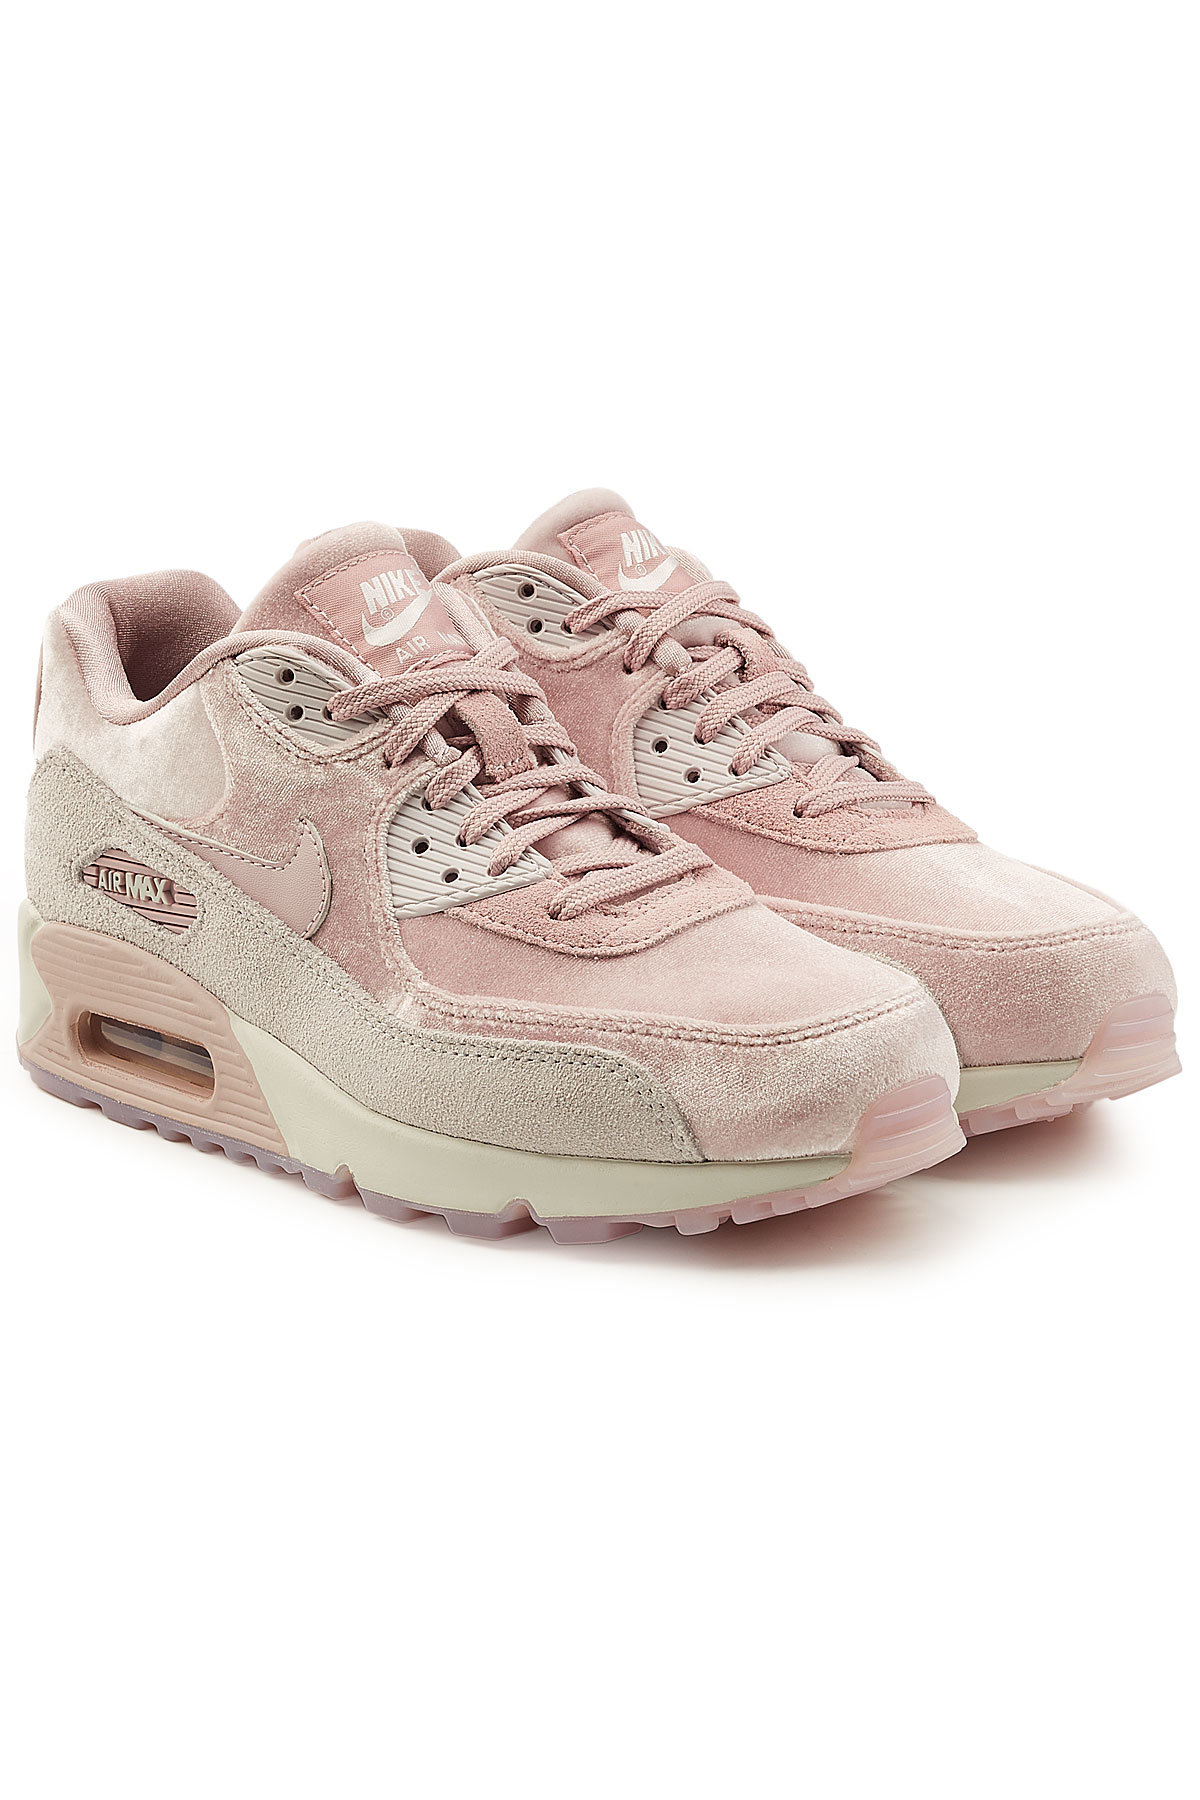 Pink Air Max 90 Suede Sneakers by Nike - Canary Rook